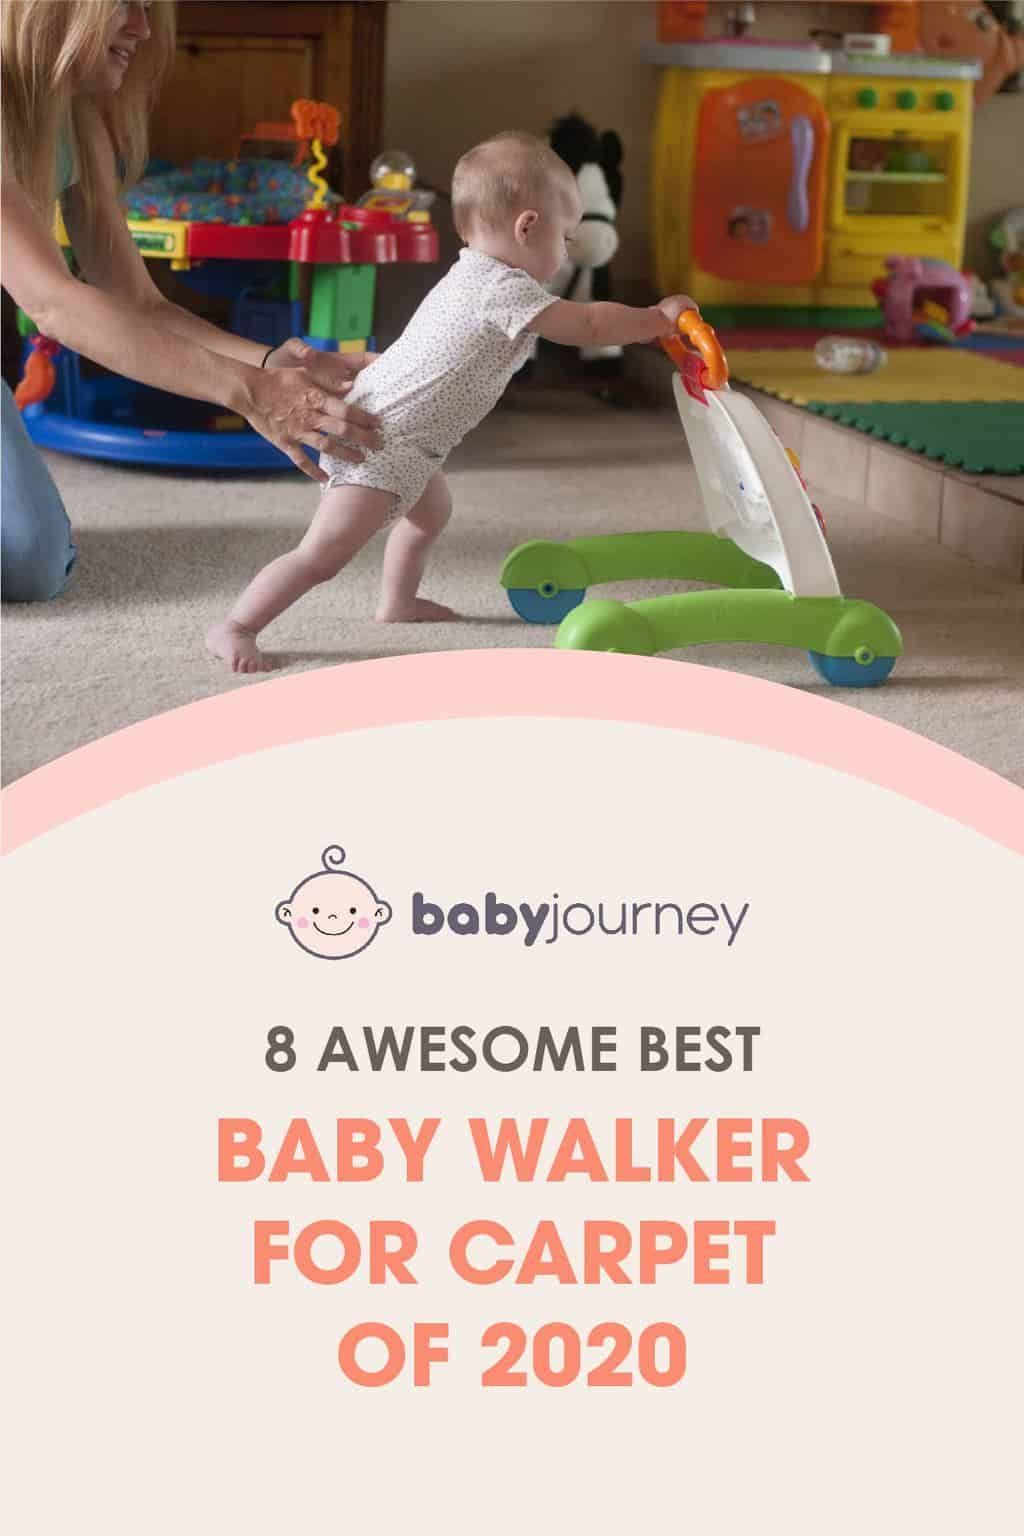 8 Awesome Best Baby Walker For Carpet Of 2020 In 2020 Baby Walker Infant Activities Baby Swings